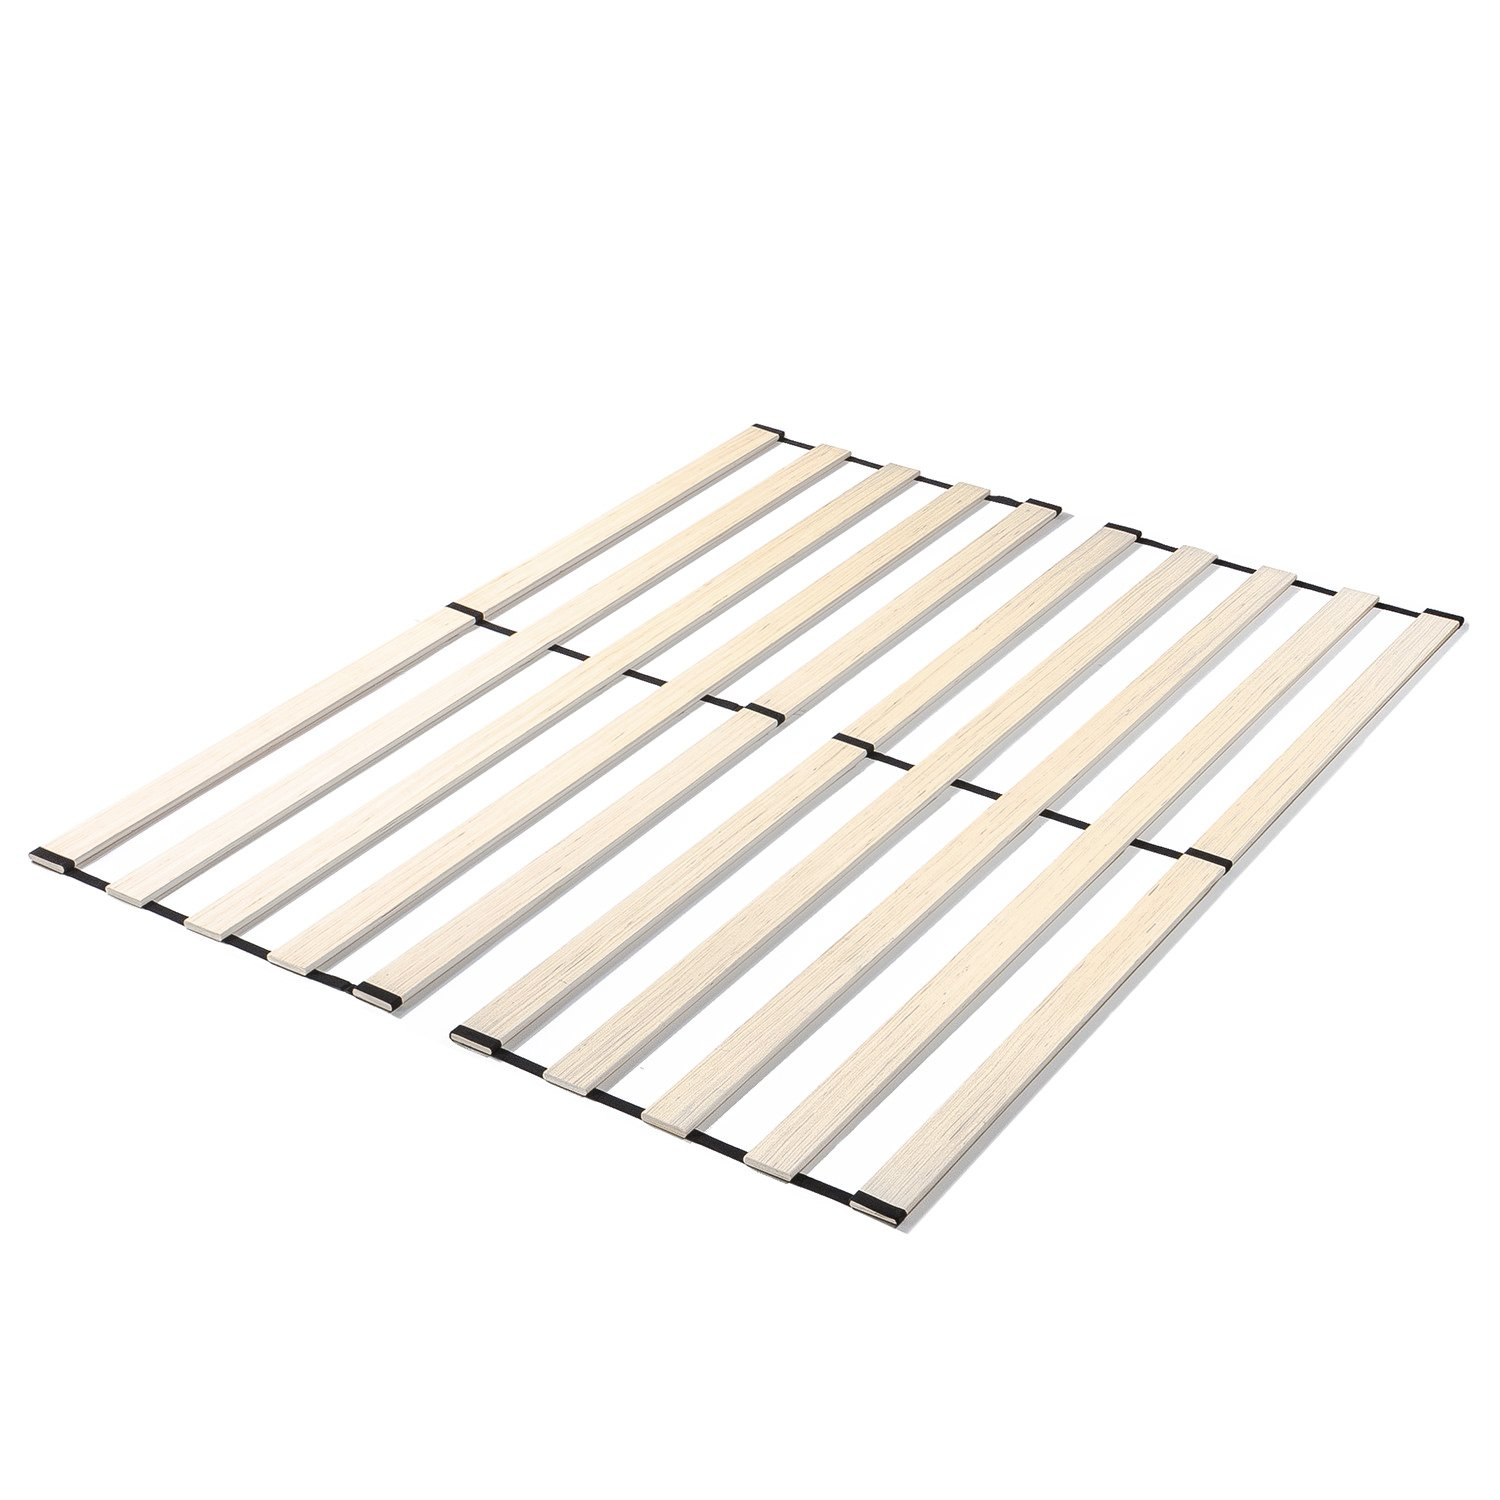 Zinus Solid Wood Vertical Bed Support Slats/Bunkie Board